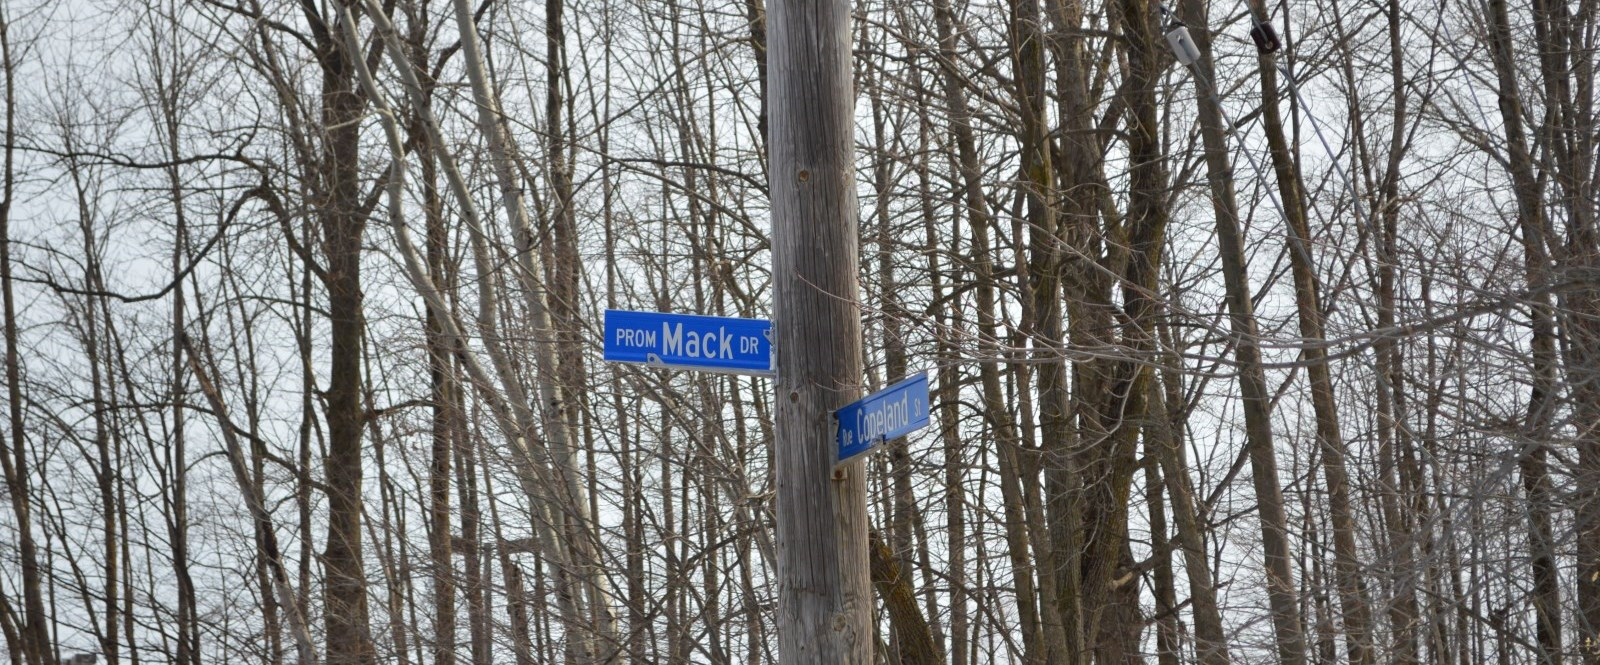 Mack Drive street sign in front of forest